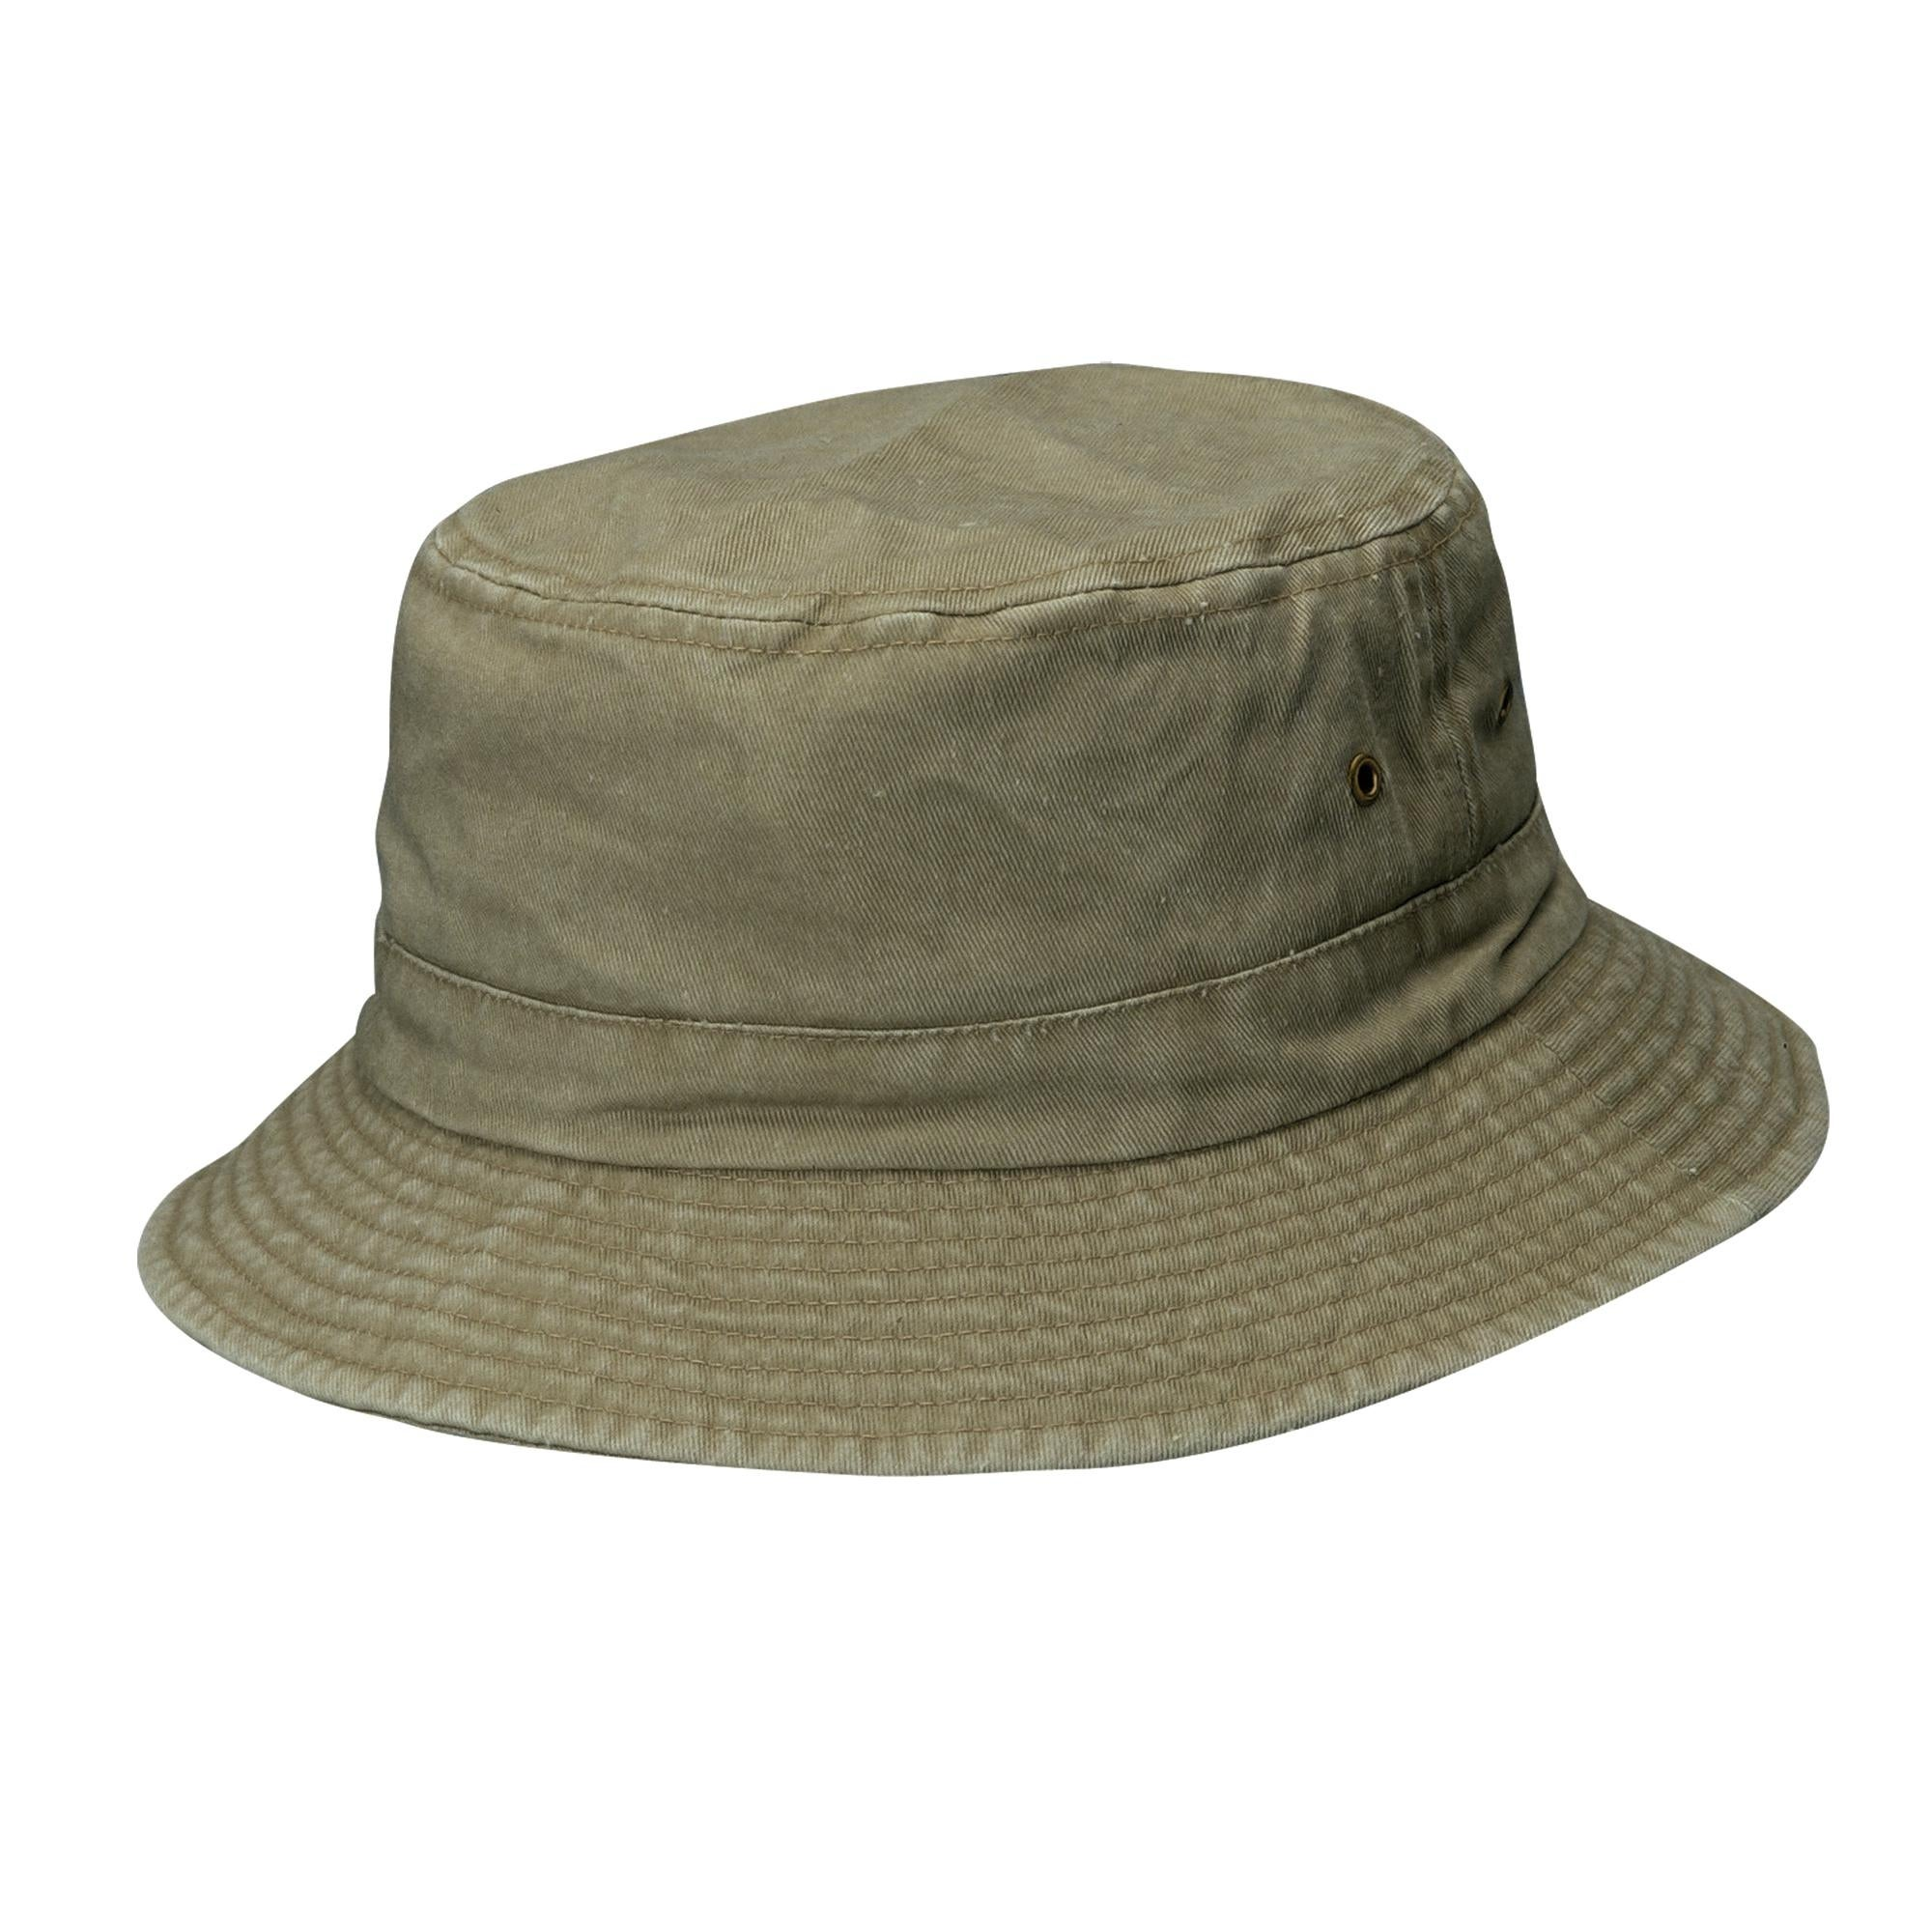 8309f9d4287 Shop Dorfman Pacific Cotton Big and Tall Summer Bucket Hat 2XL 3XL - Free  Shipping On Orders Over  45 - Overstock - 14278362